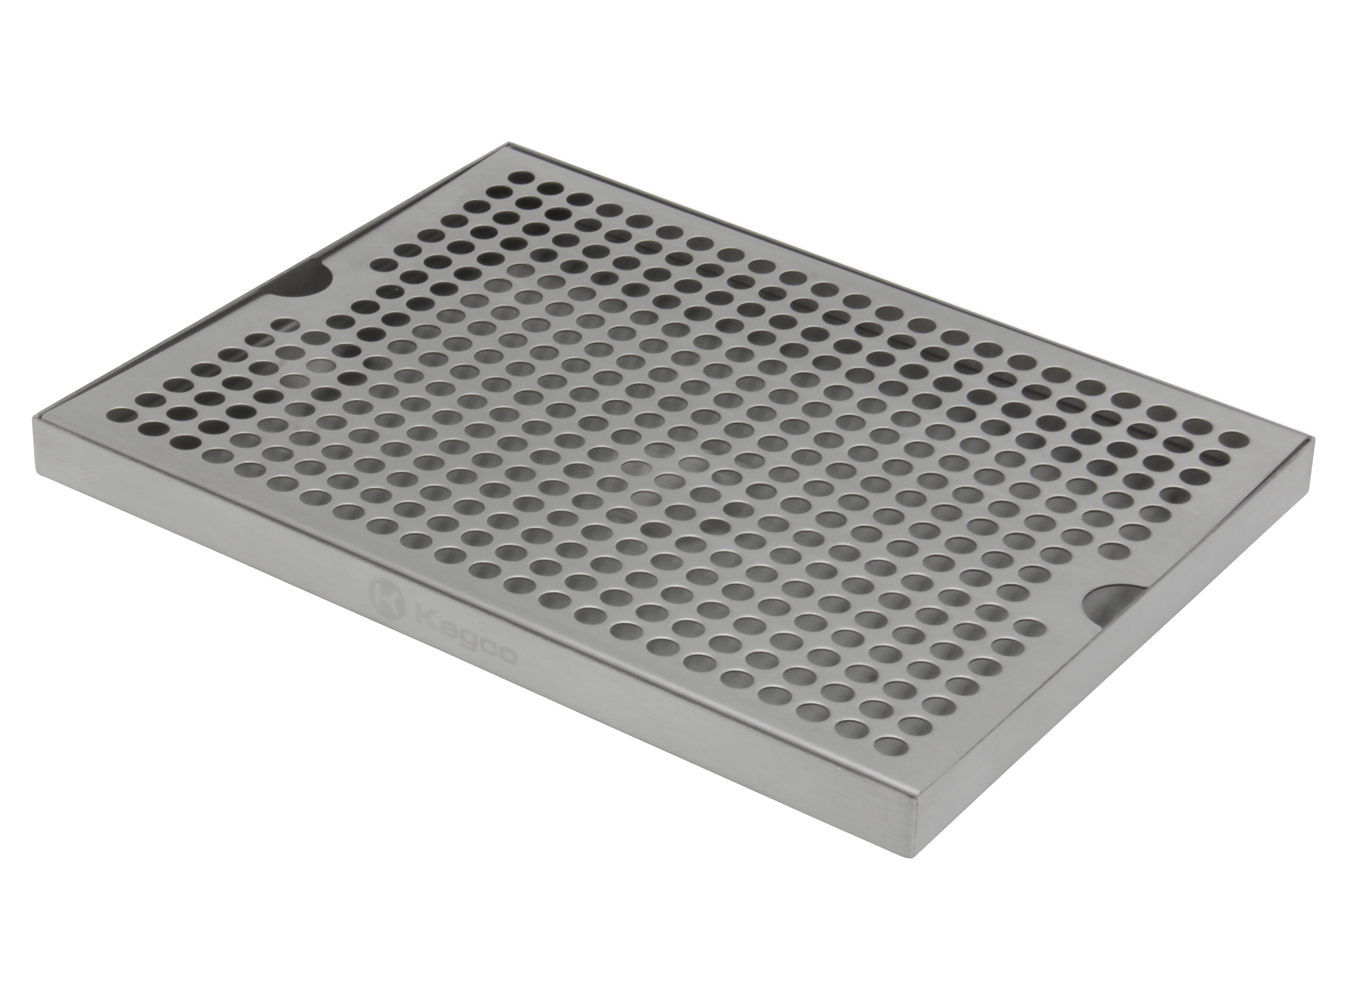 Kegco Stainless Steel 12 x 9 Surface Mount BEER Drip Tray No Drain